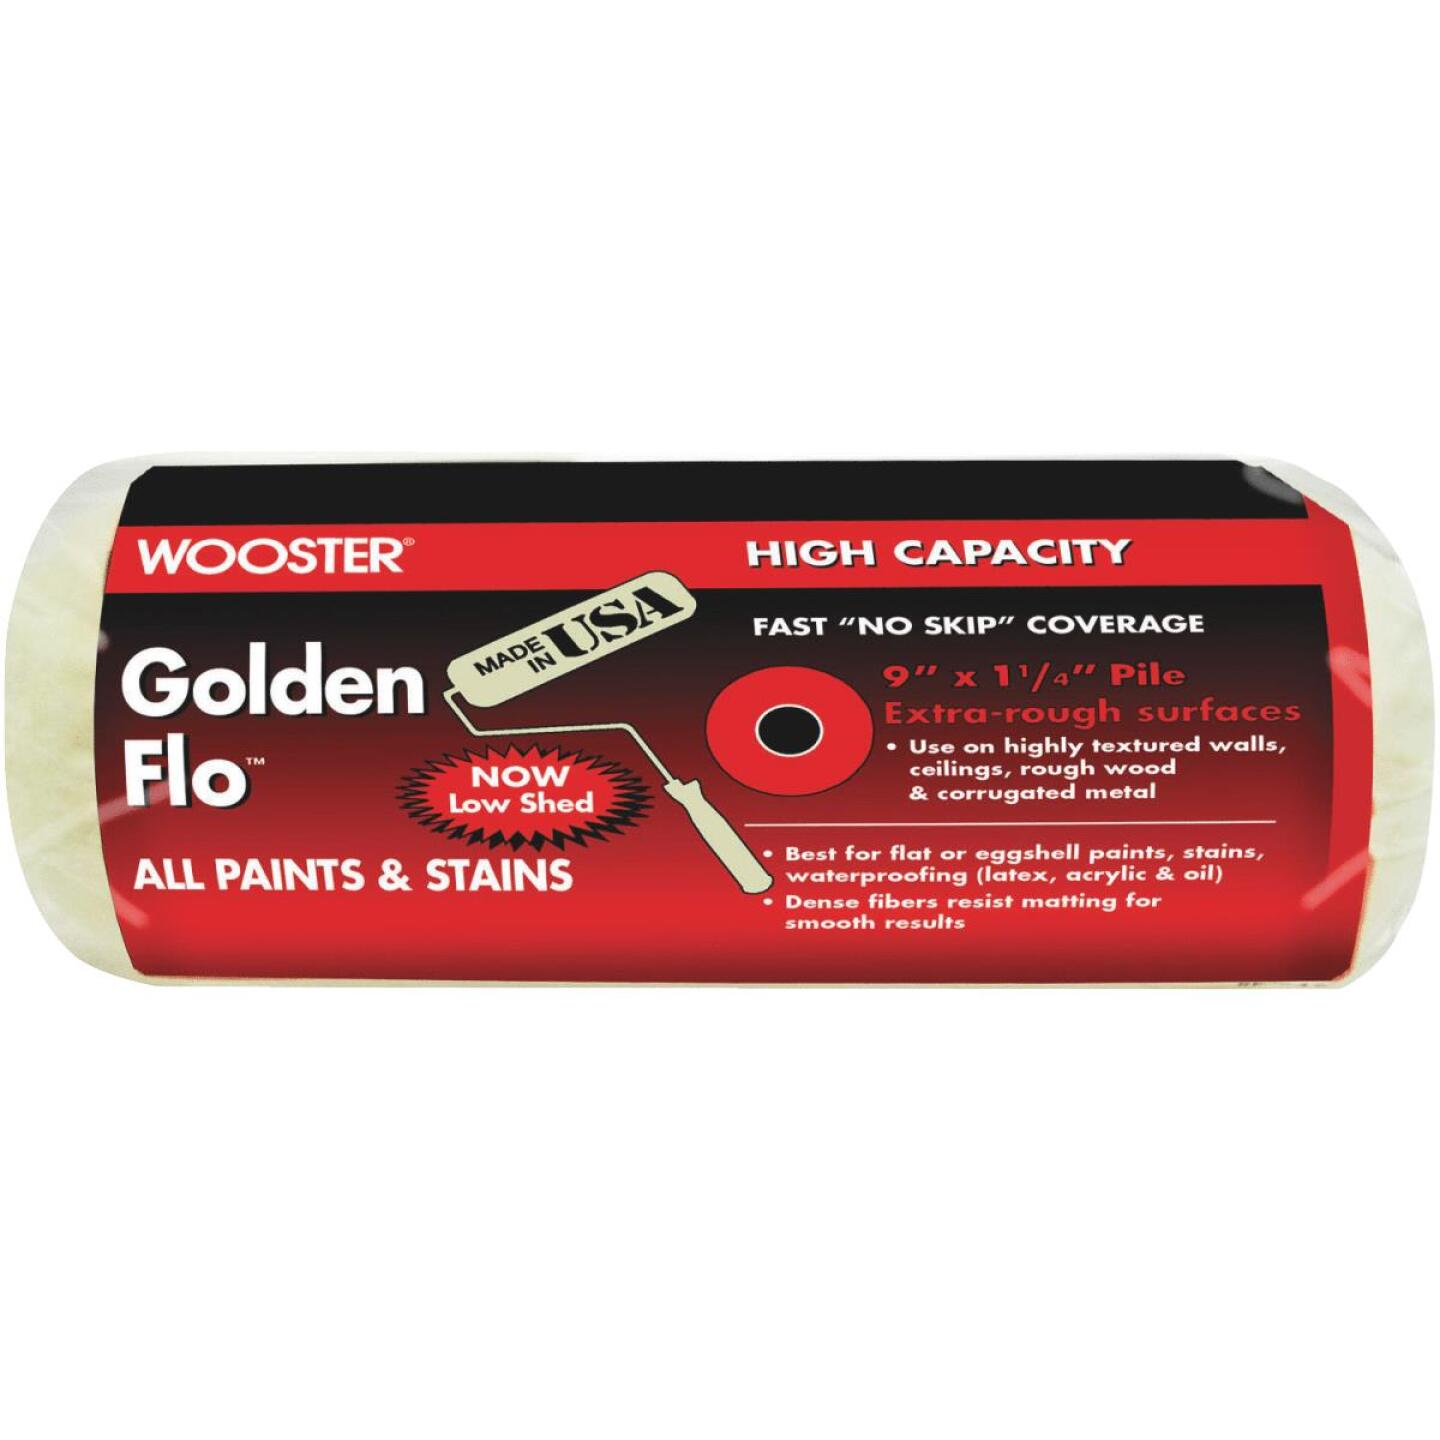 Wooster Golden Flo 9 In. x 1-1/4 In. Knit Fabric Roller Cover Image 1